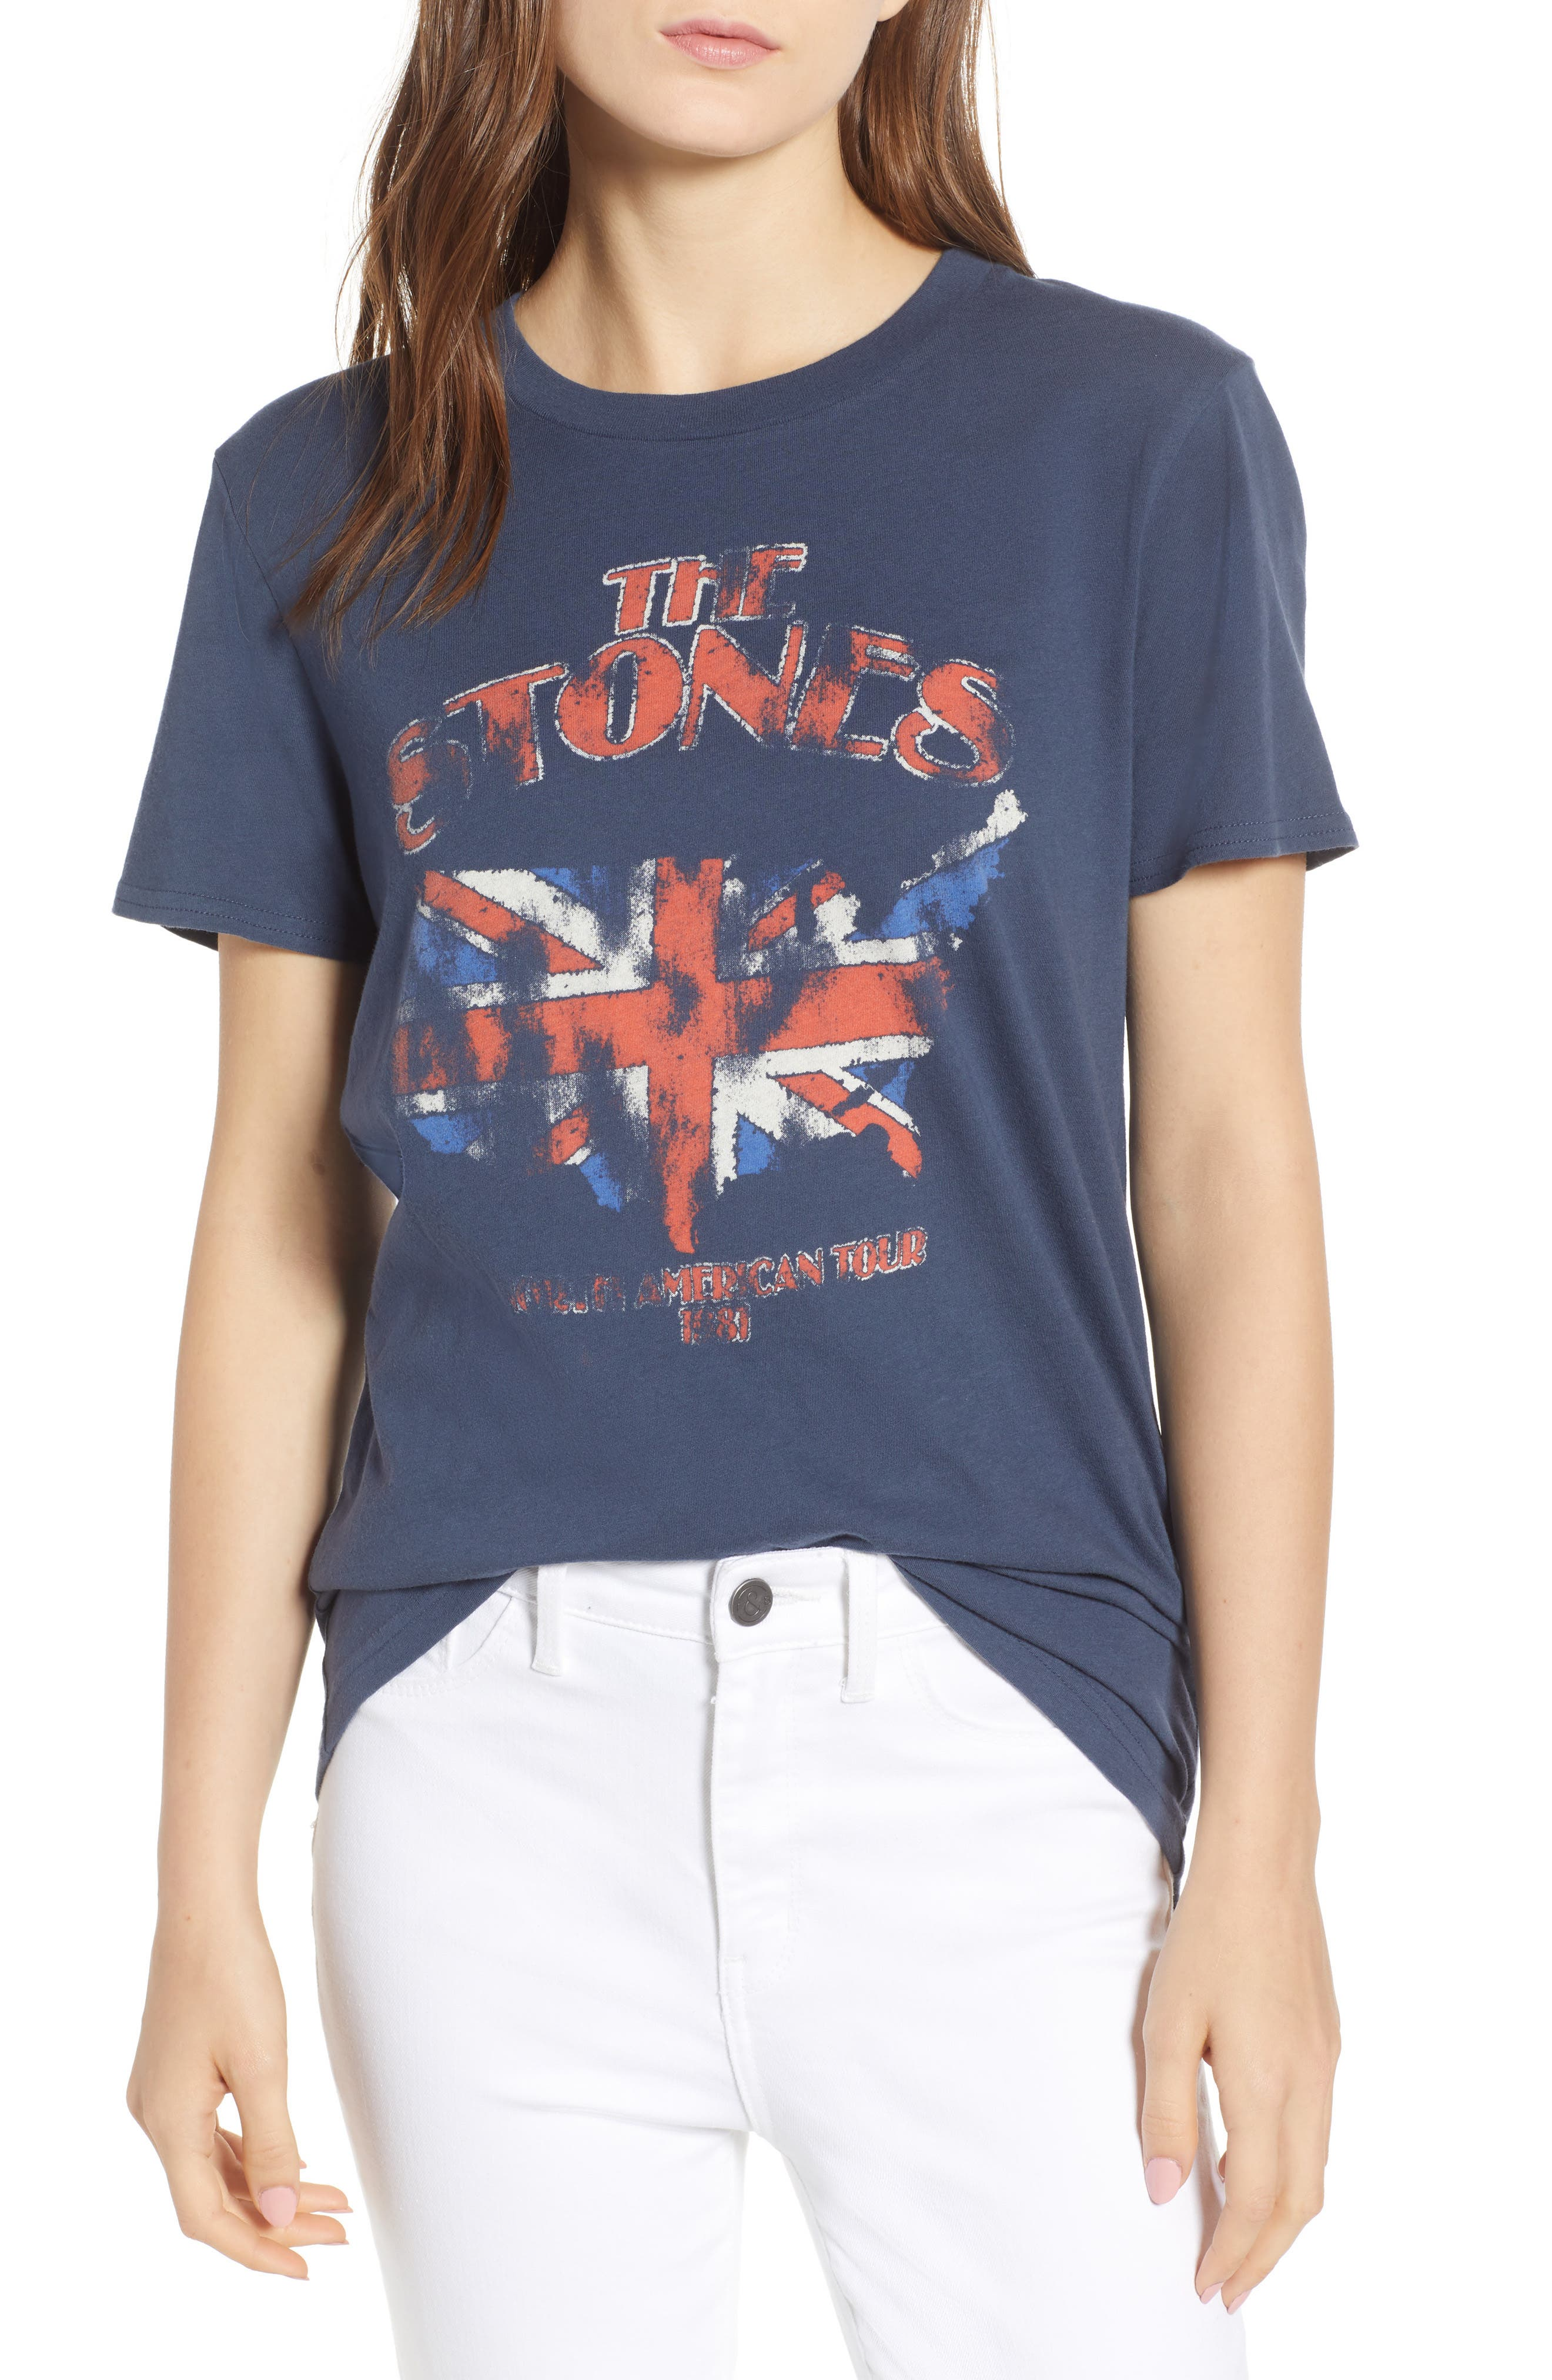 The Stones Graphic Tee,                             Main thumbnail 1, color,                             420